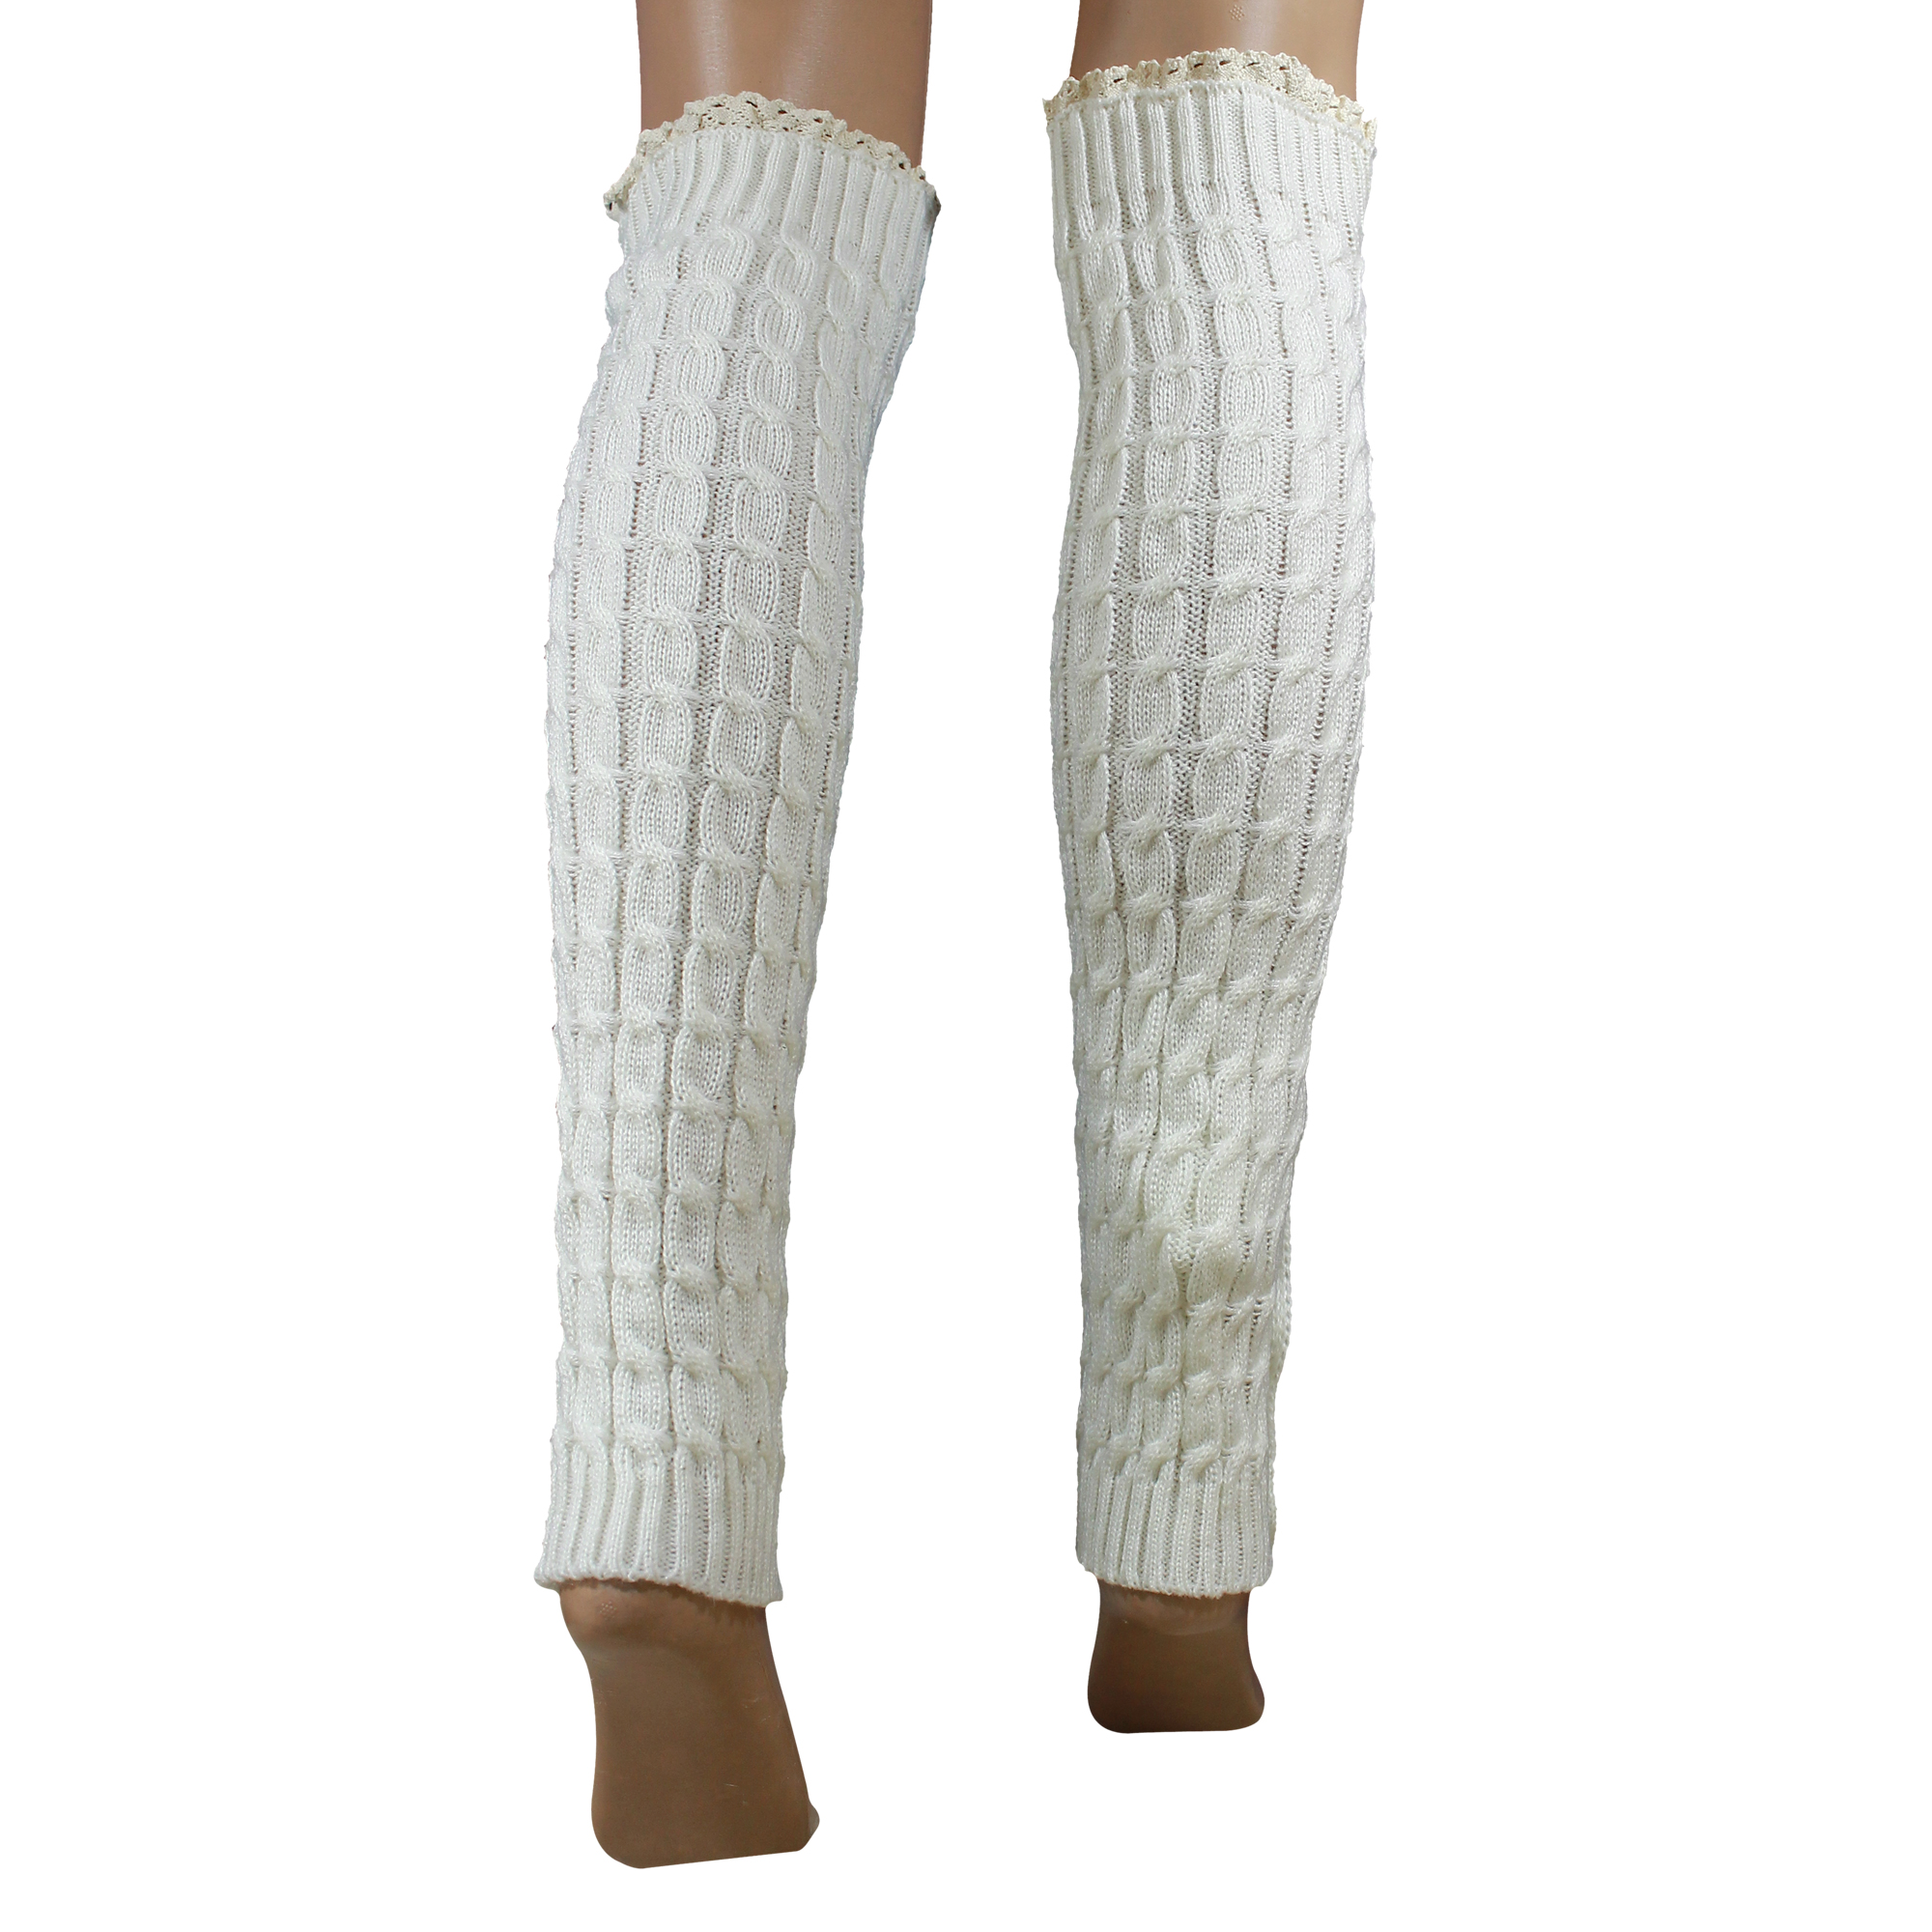 71 best leg warmer outfits images on Pinterest Winter, My style and Fall fashion leg warmers